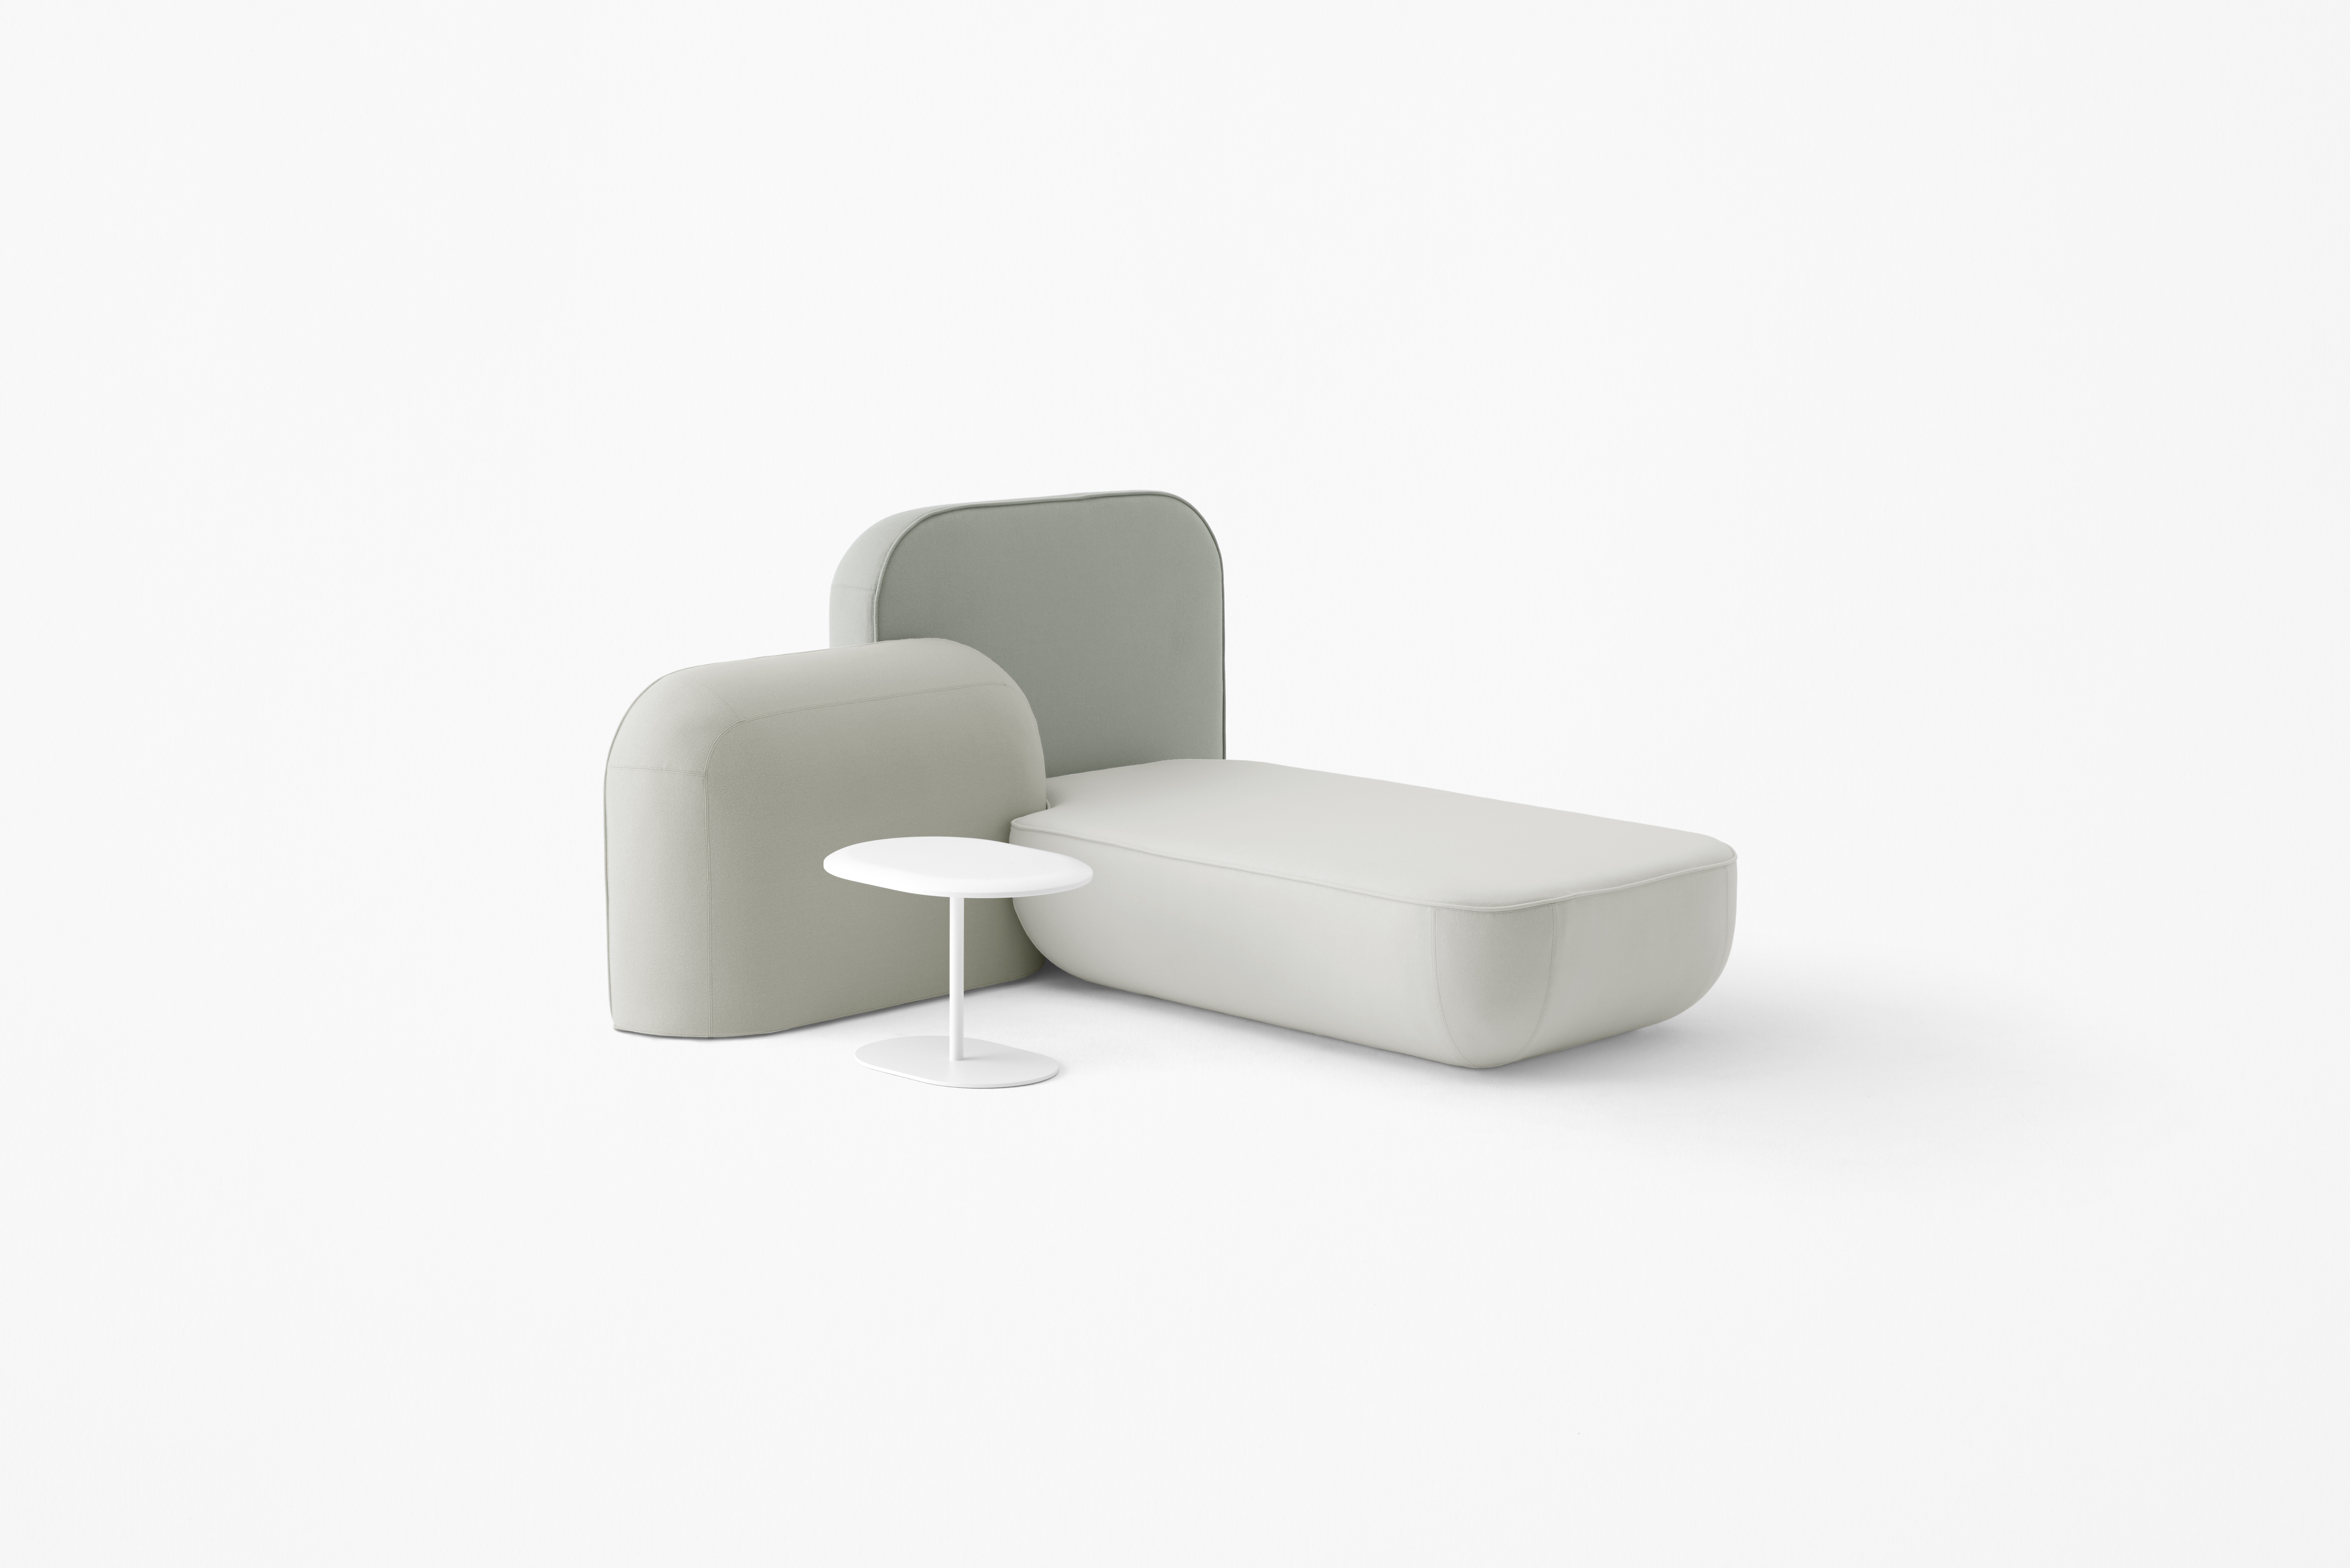 Okome Sofa by Nendo for Alias